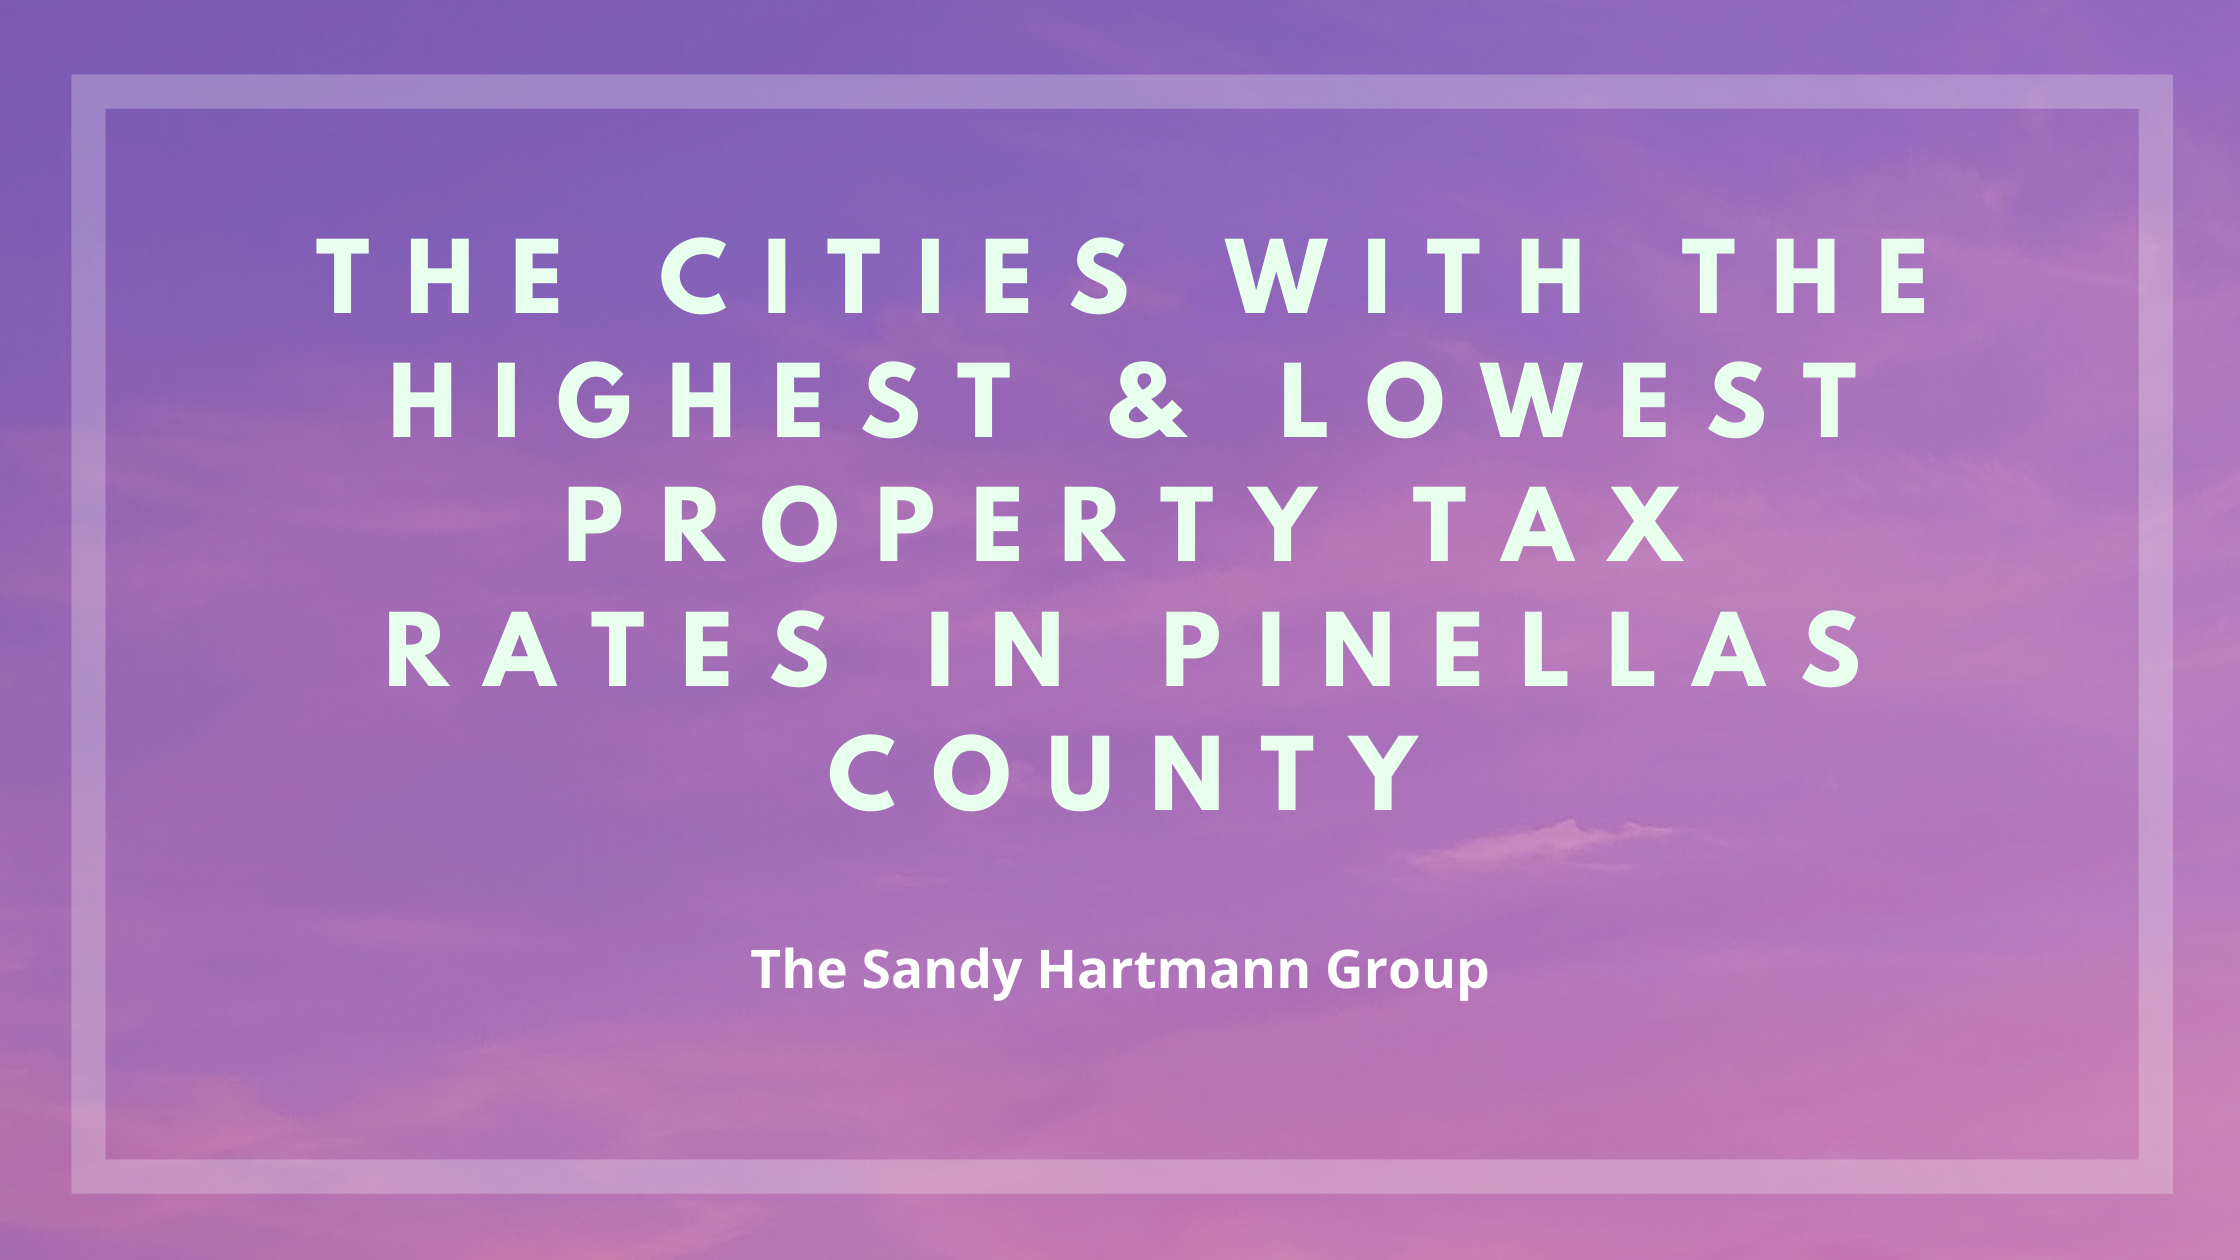 Pinellas County Property Tax Rates